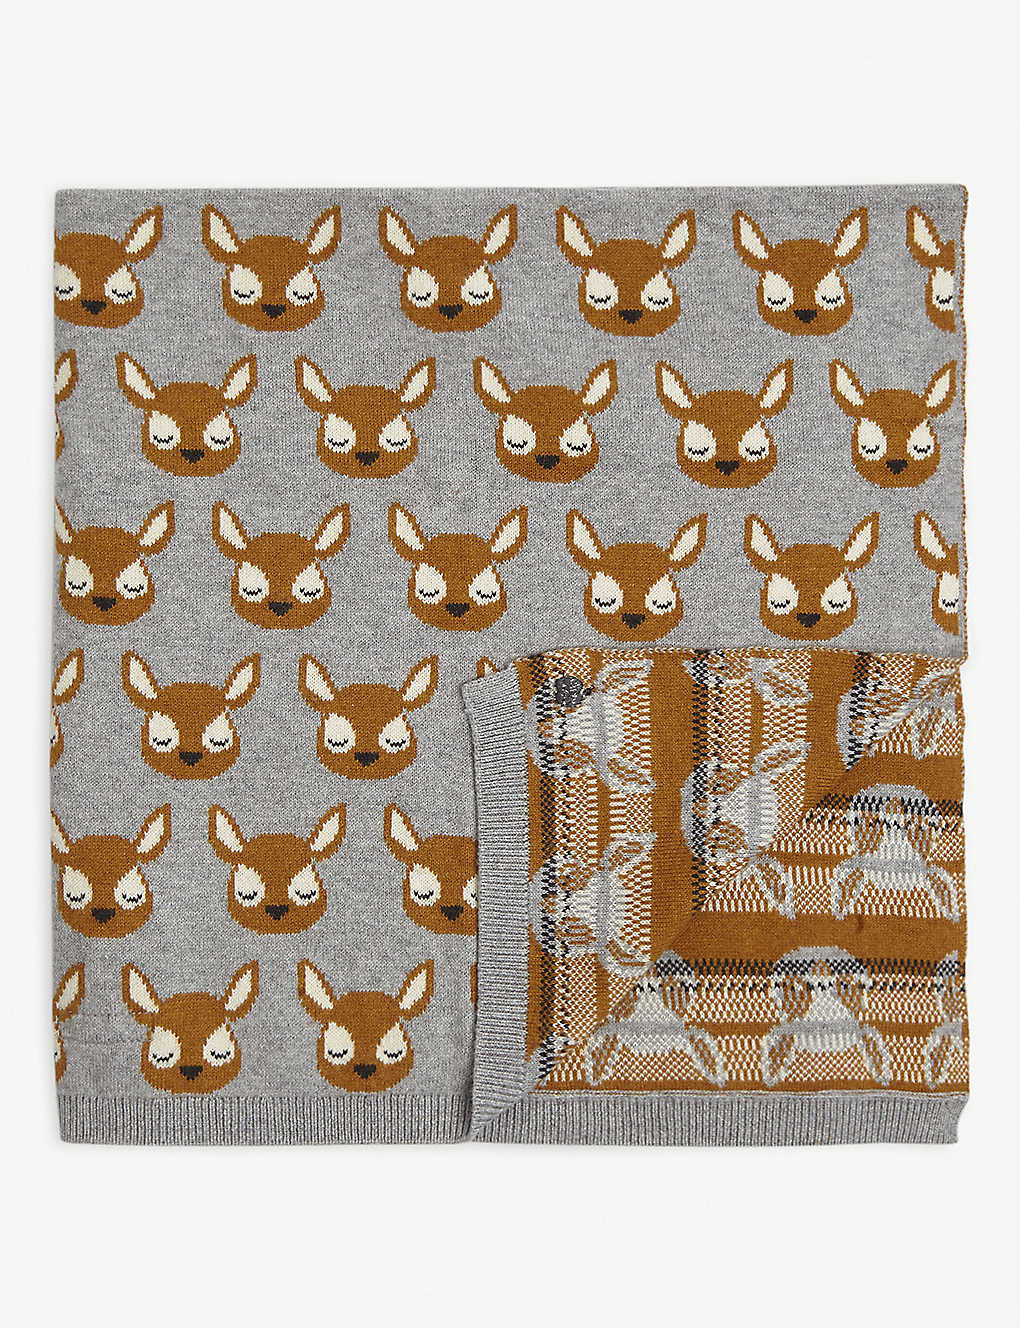 BONNIE MOB: Deer-patterned cotton-blend baby blanket